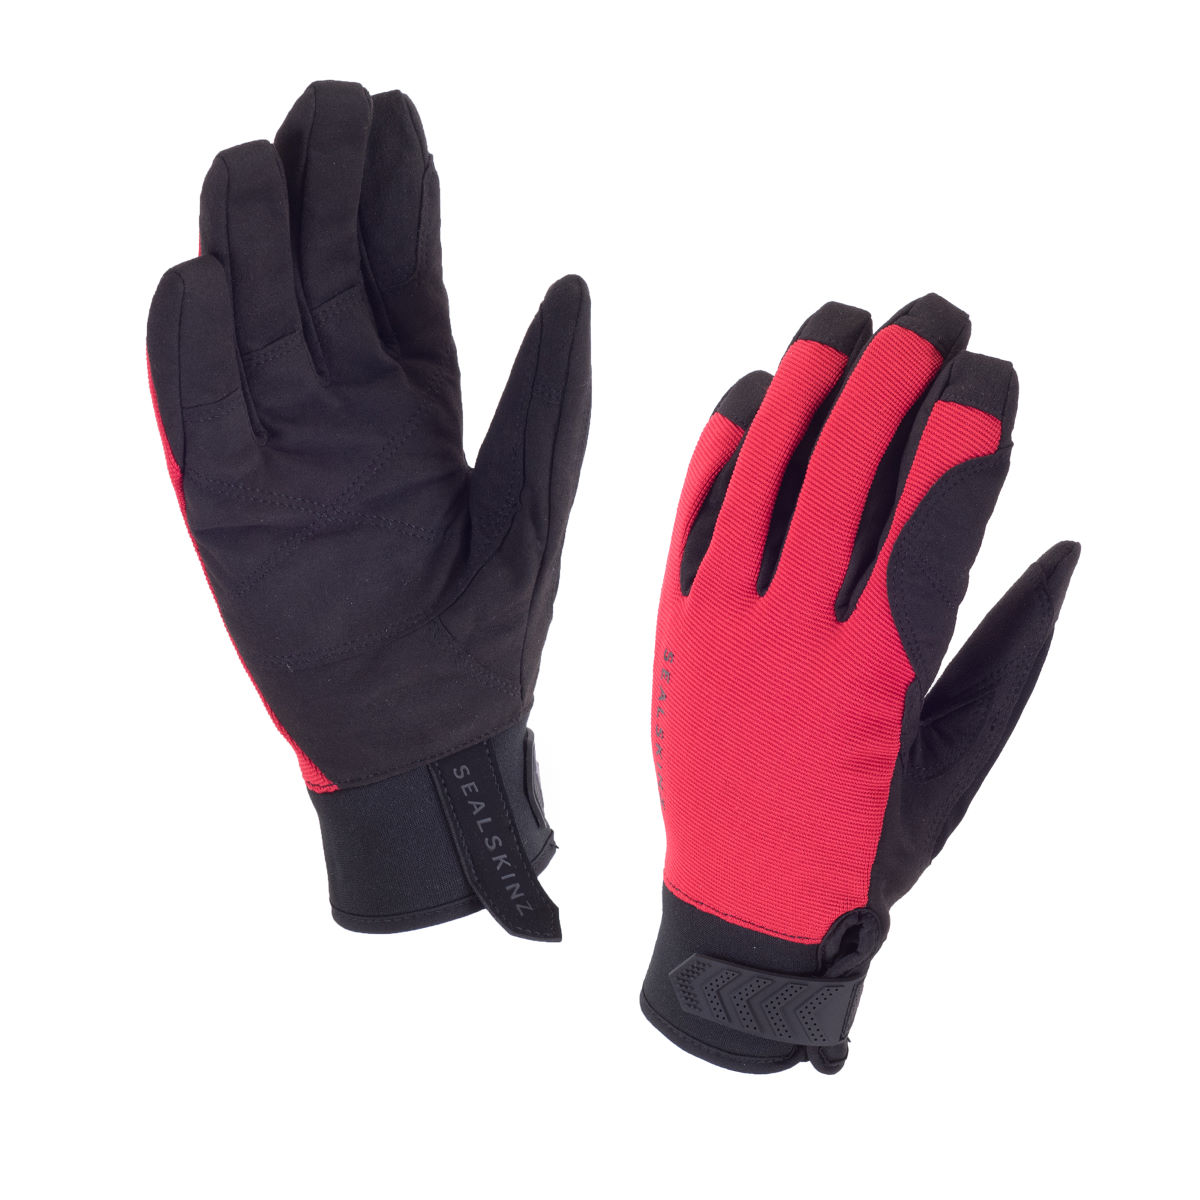 Gants SealSkinz Dragon Eye (route) - S Noir/Rouge Gants